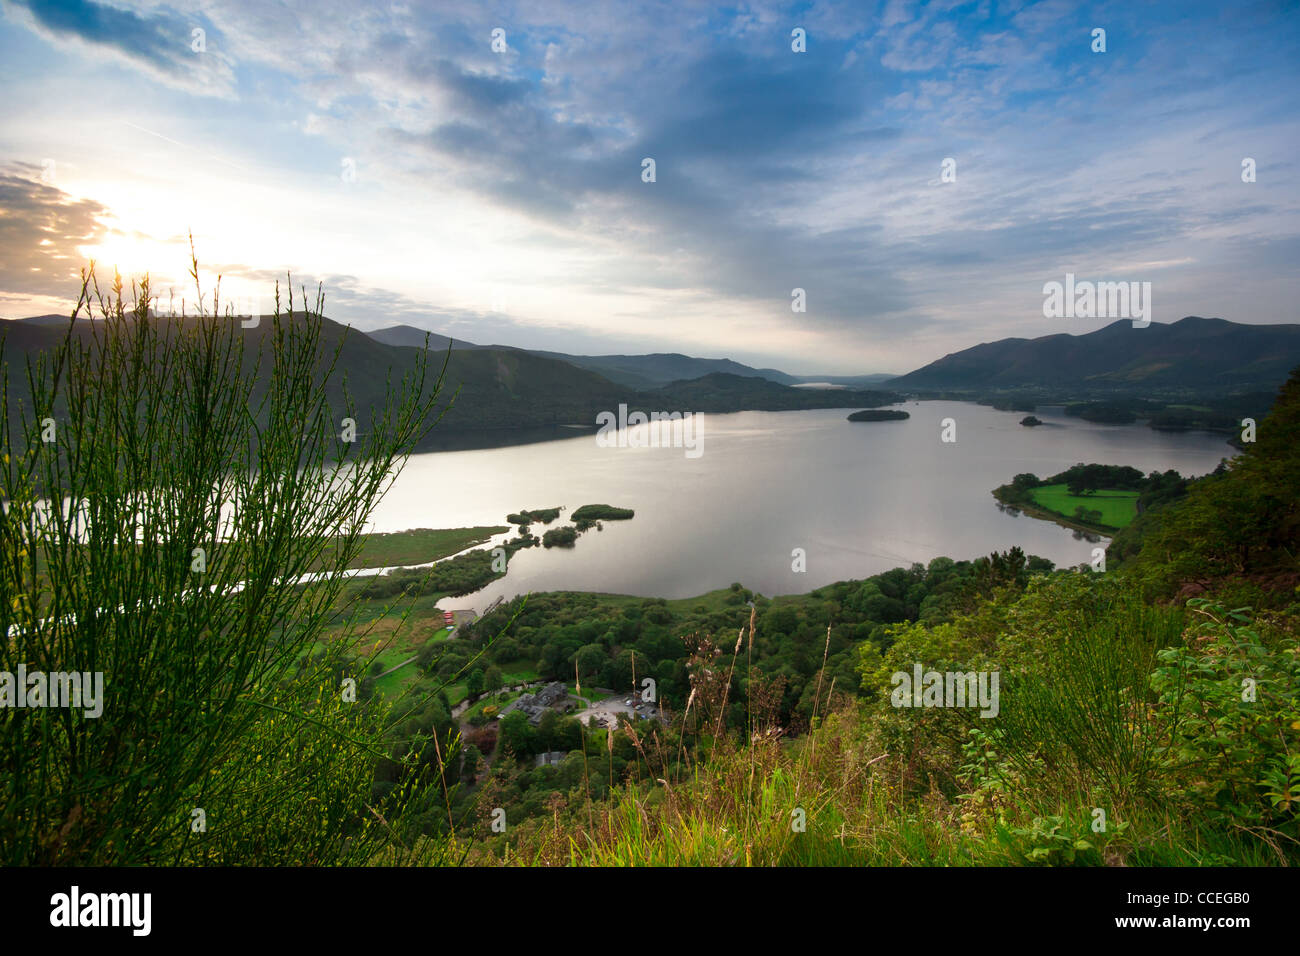 View over Derwentwater from Screes Coppice in the Lake District, Cumbria, England. - Stock Image